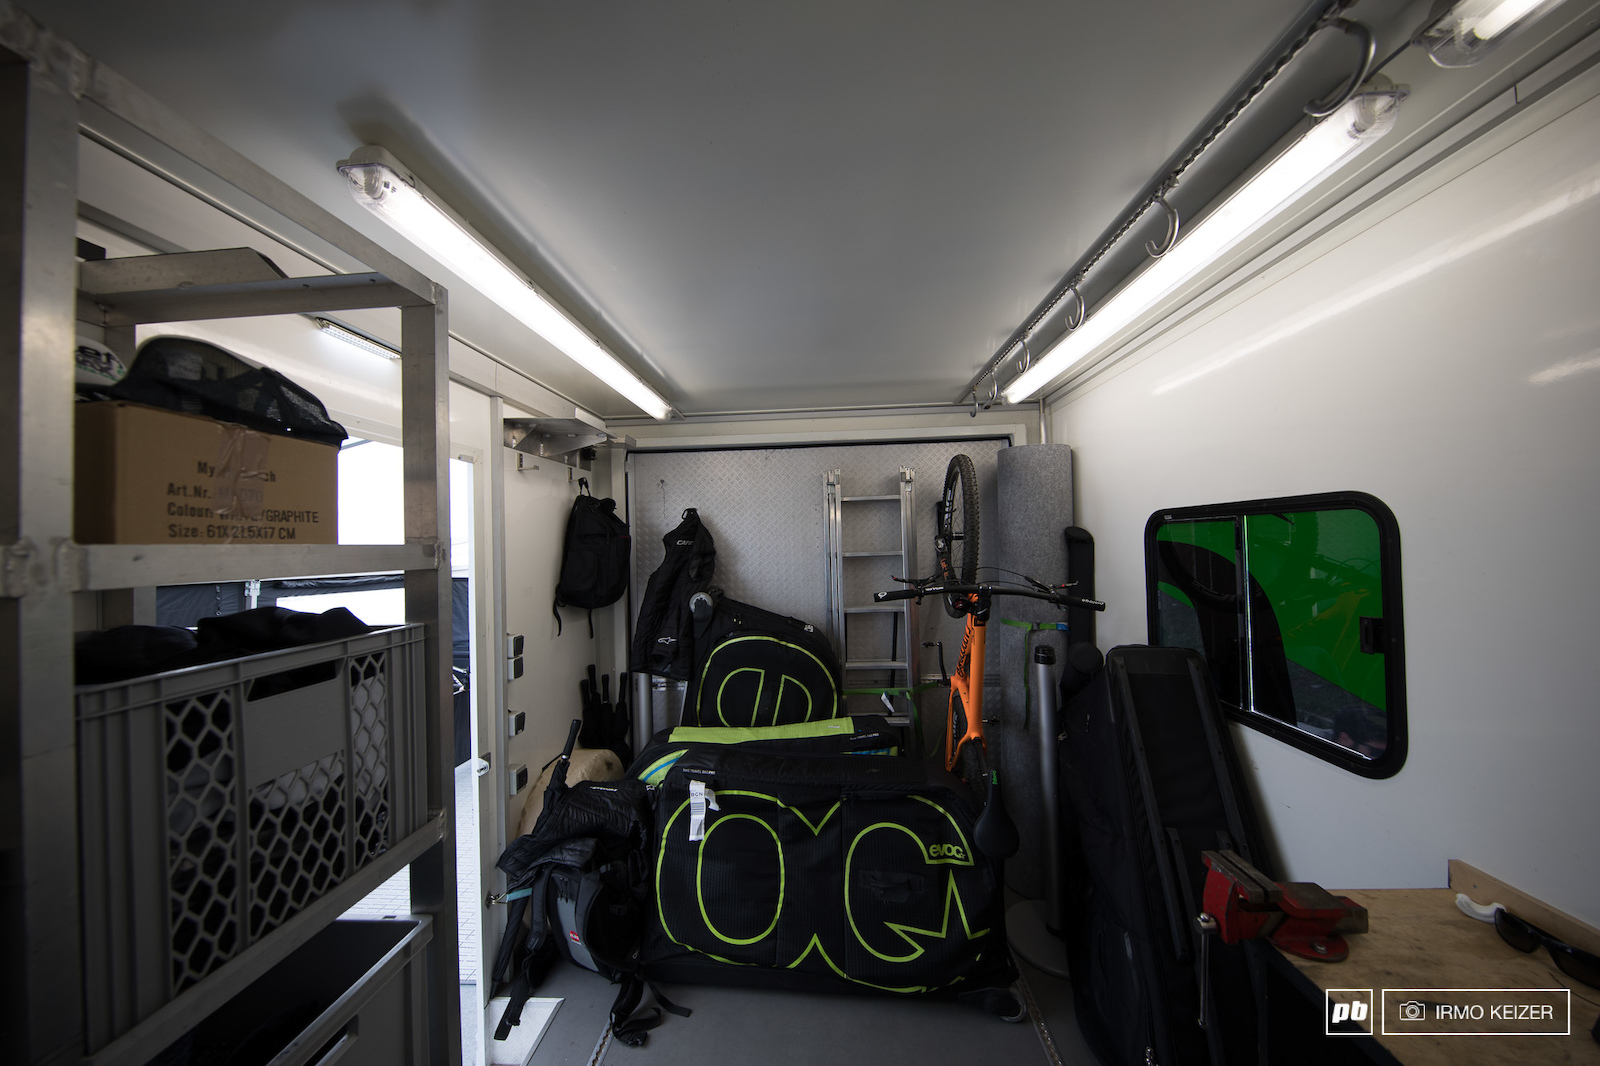 The back of the truck is used as additional storage. Bikes are not brought in the truck as these are transported with the team s sprinters.